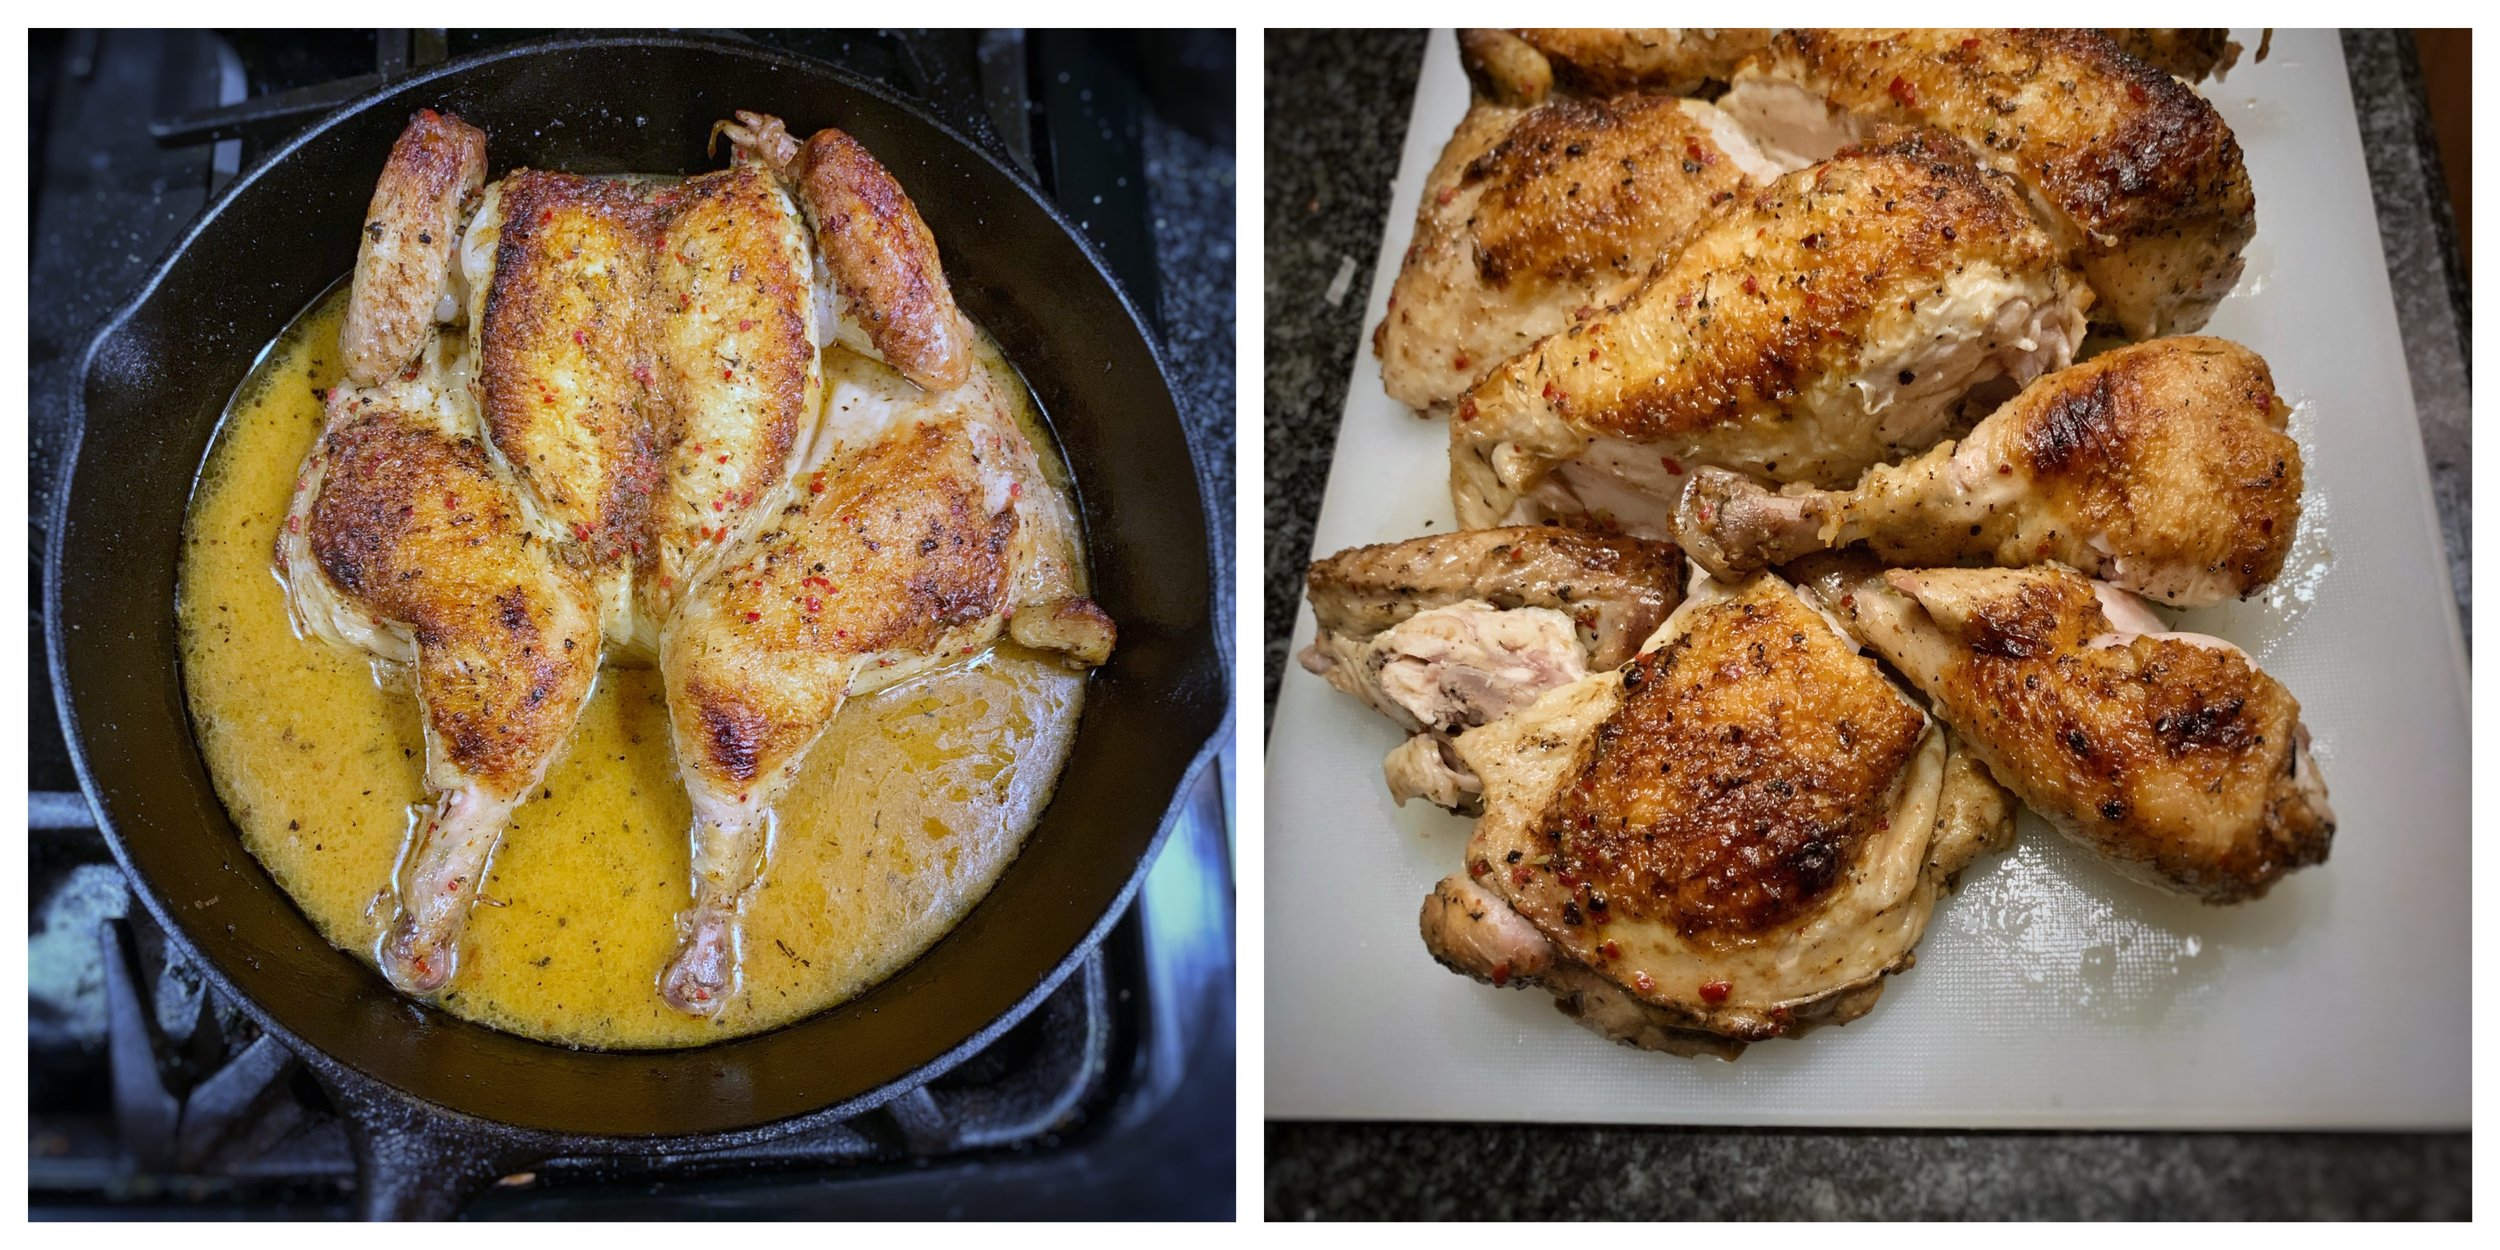 When it comes to feeding kids… - there's a huge difference between the chicken on the left and the one on the right!